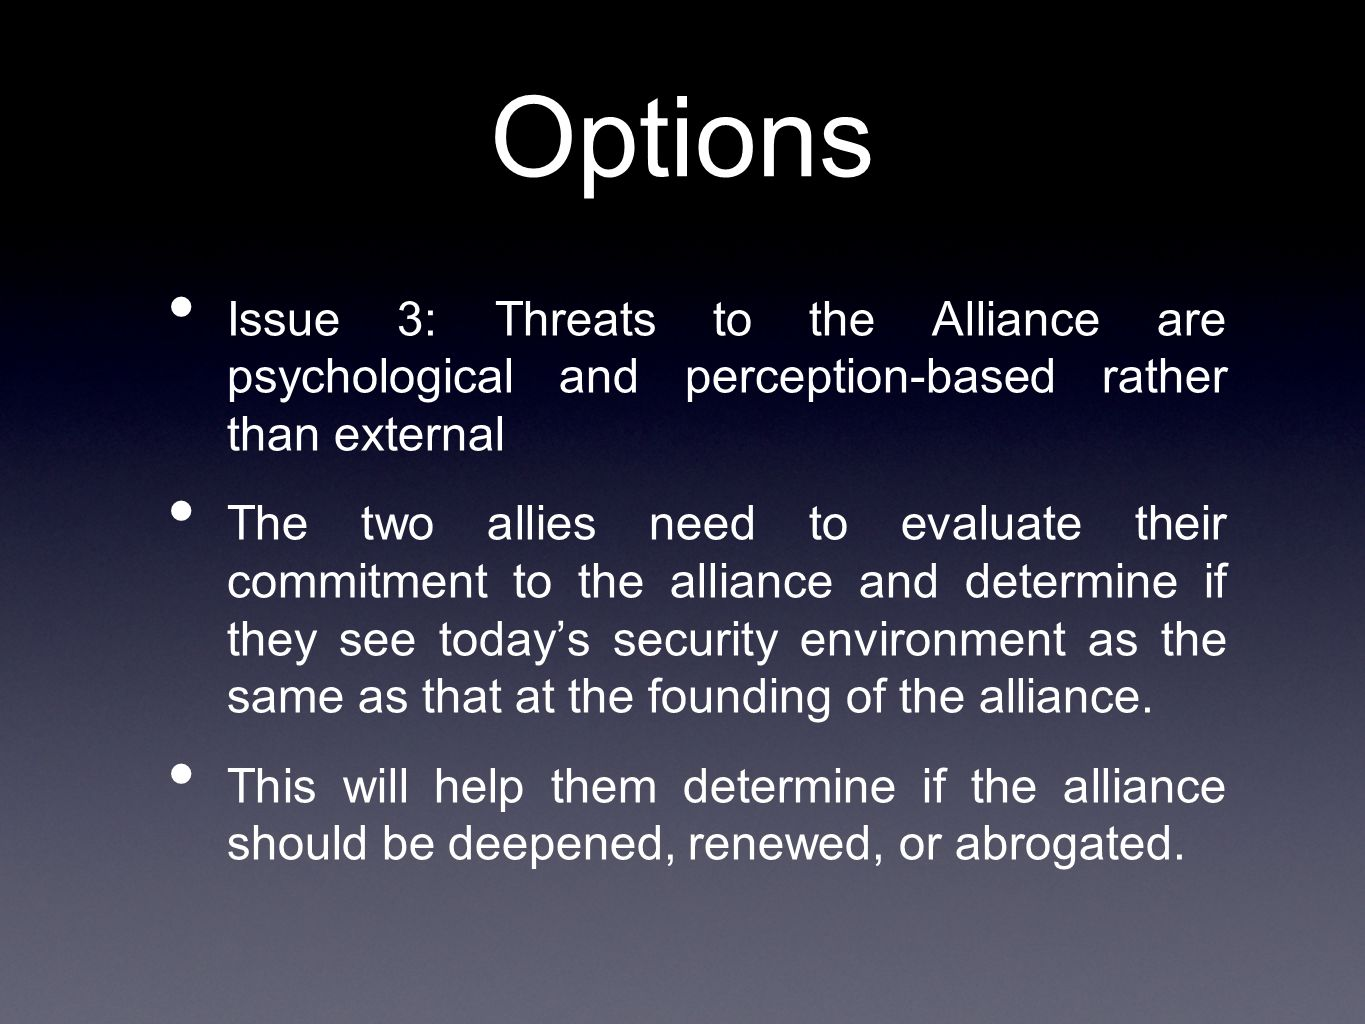 Options Issue 3: Threats to the Alliance are psychological and perception-based rather than external The two allies need to evaluate their commitment to the alliance and determine if they see today's security environment as the same as that at the founding of the alliance.